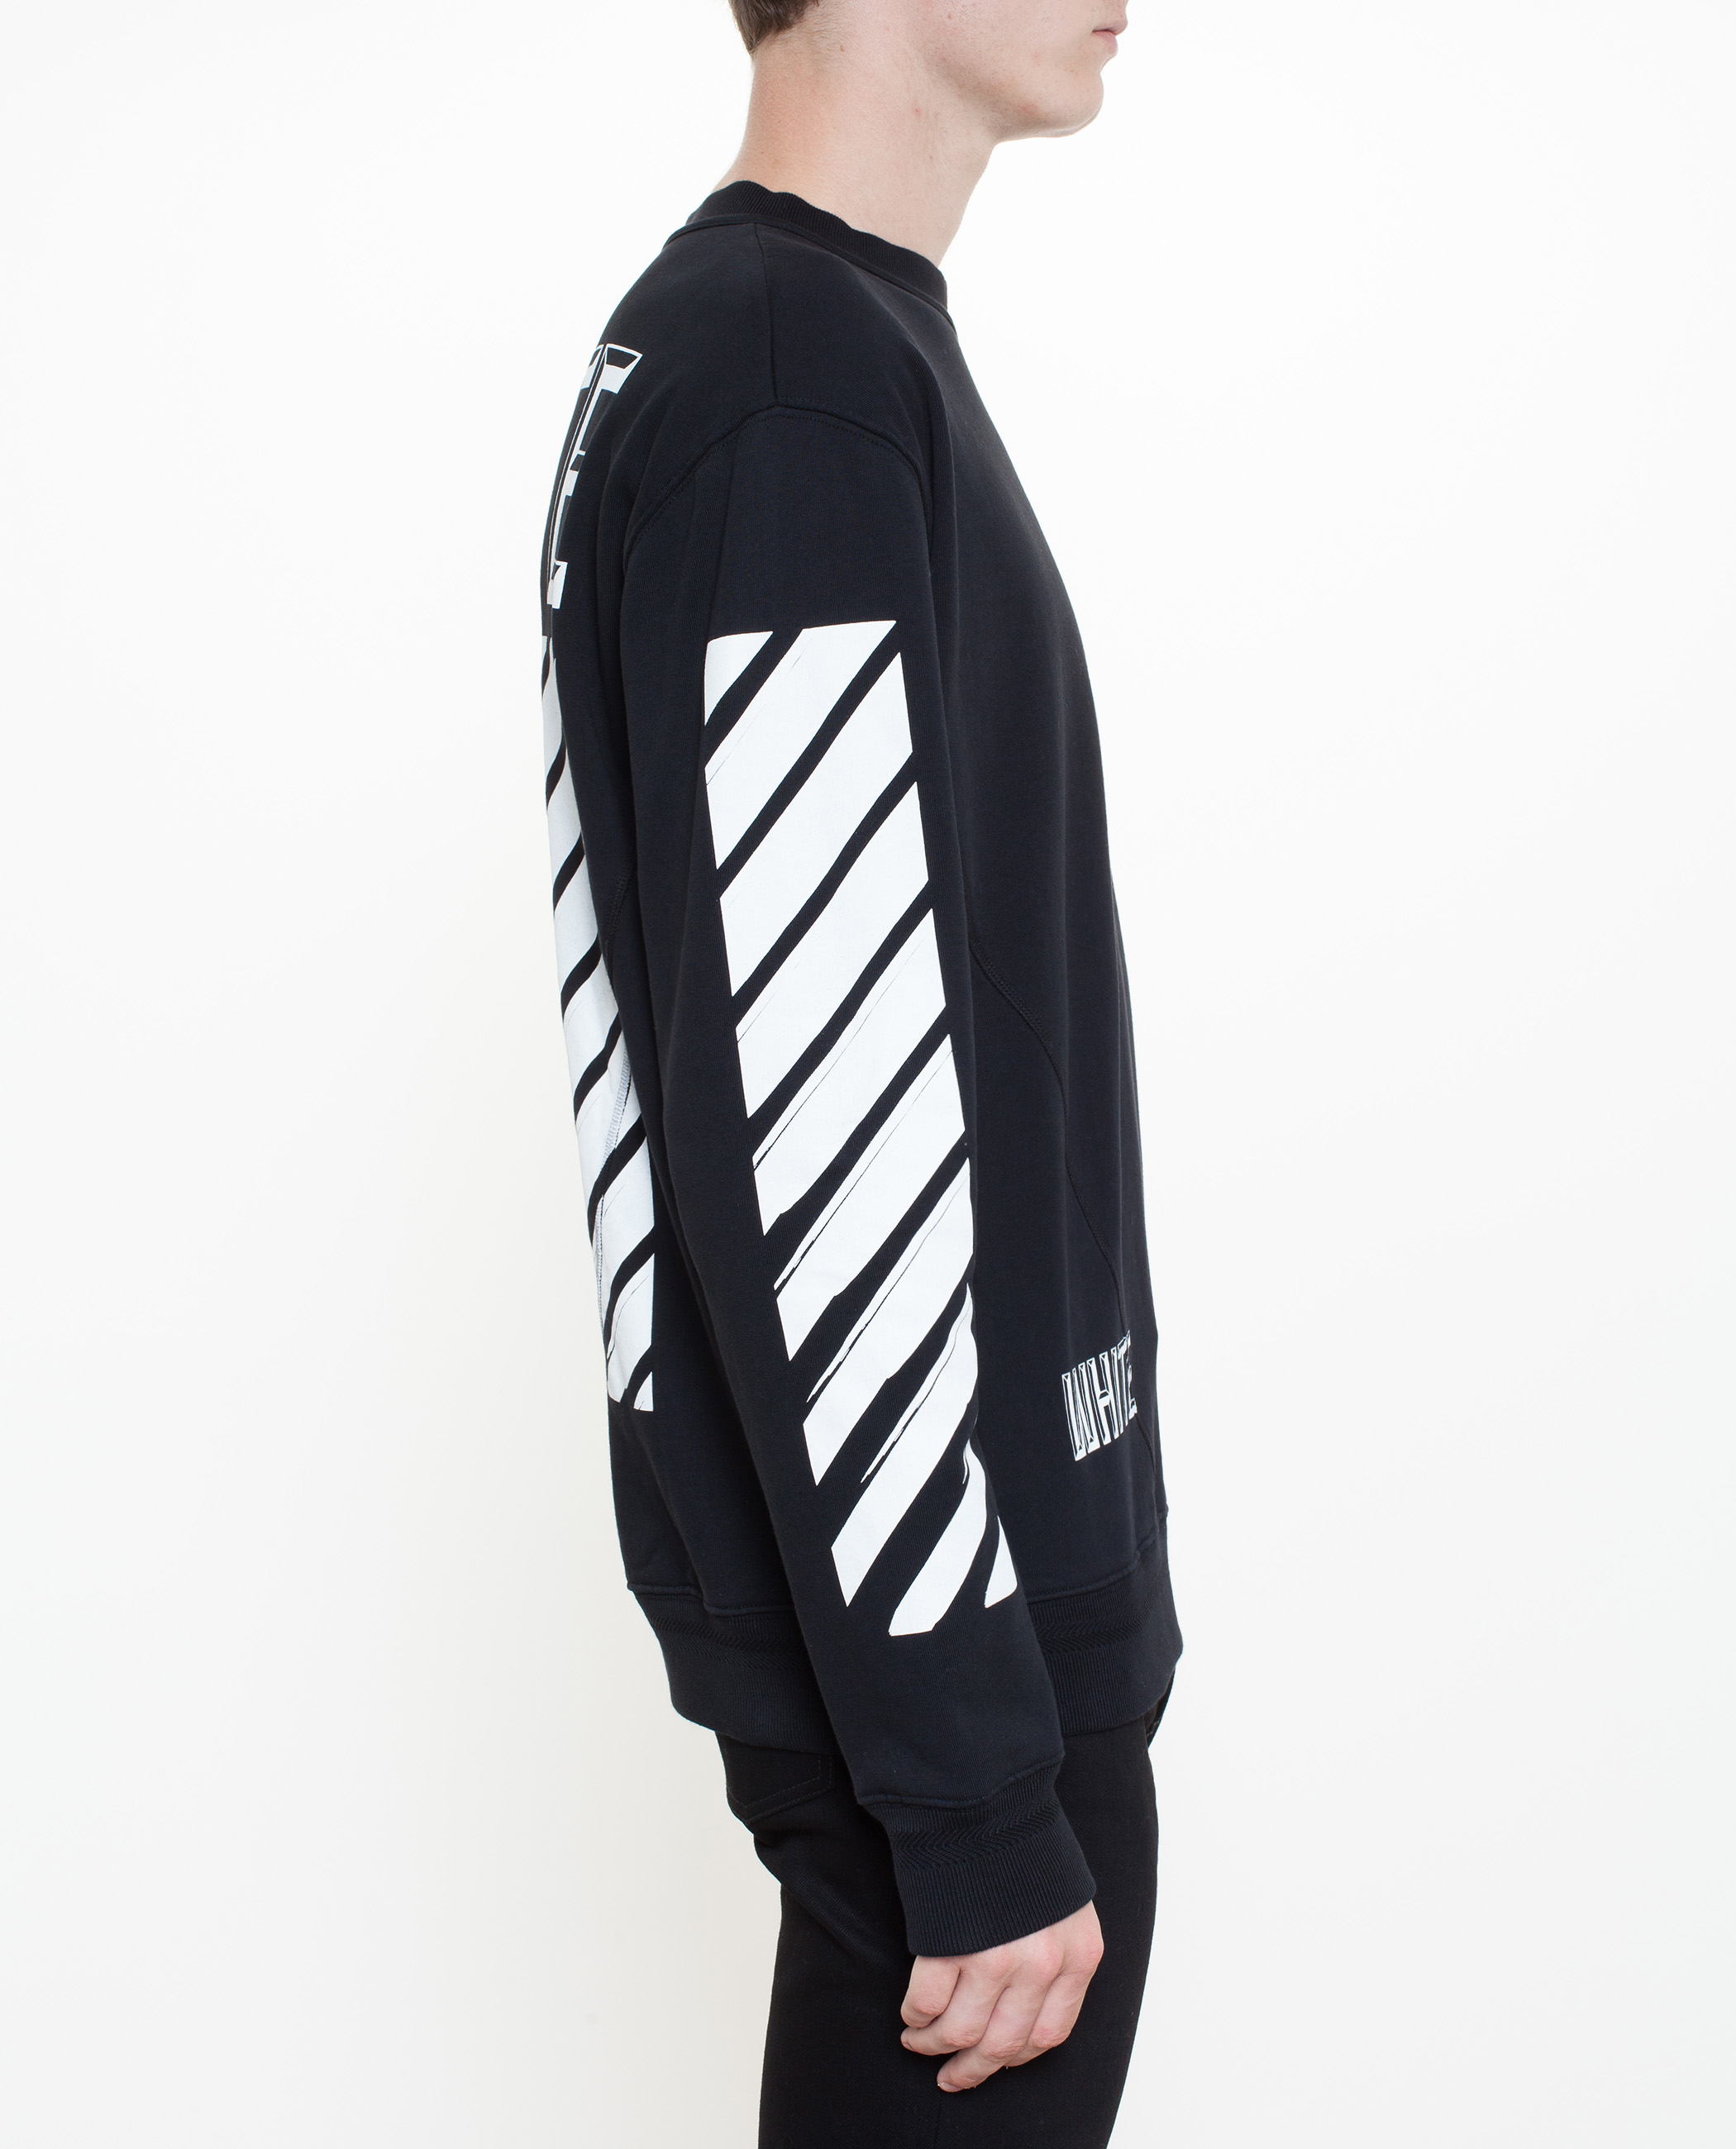 Off-white c/o virgil abloh 3d Logo Sweatshirt in Black | Lyst